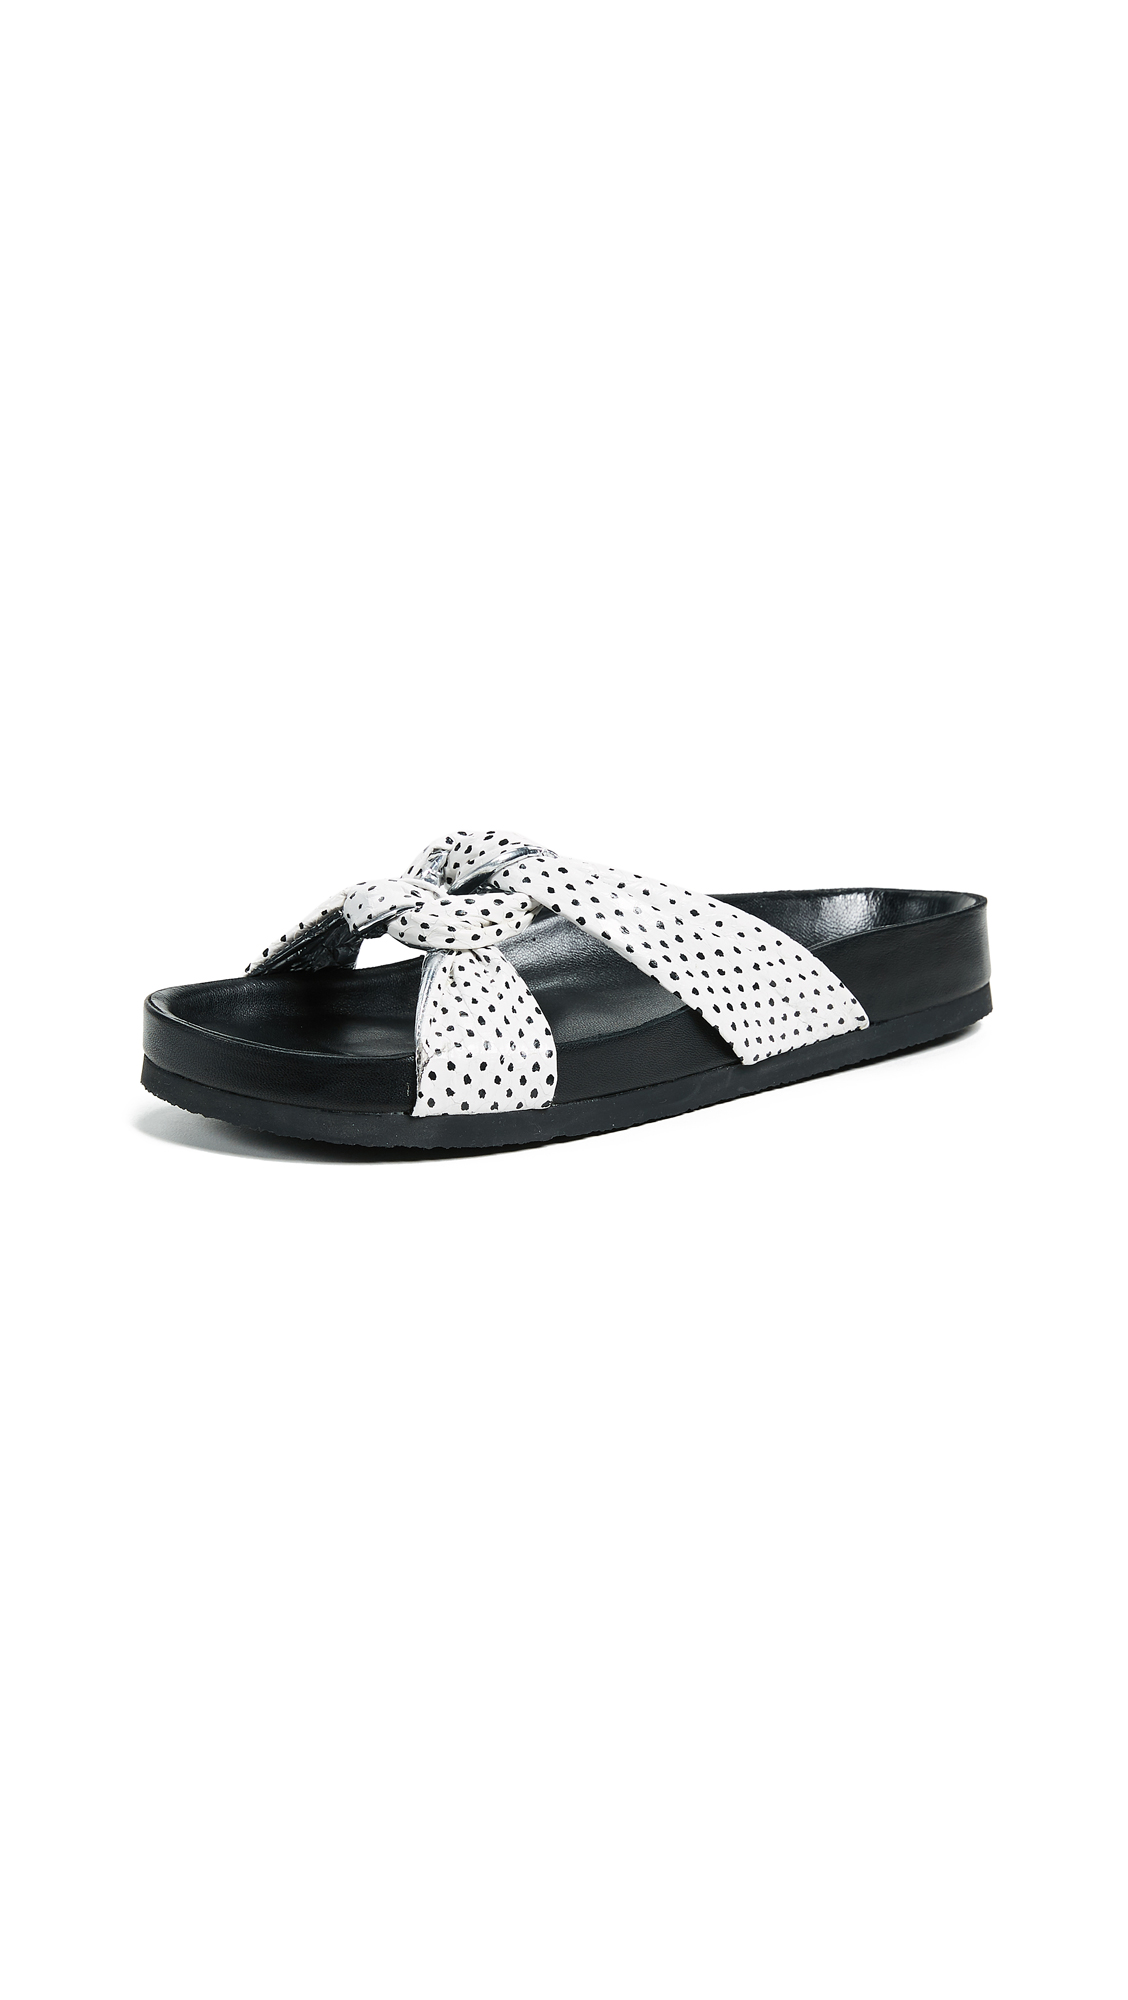 IRO Knoty Slides - Off White/Black